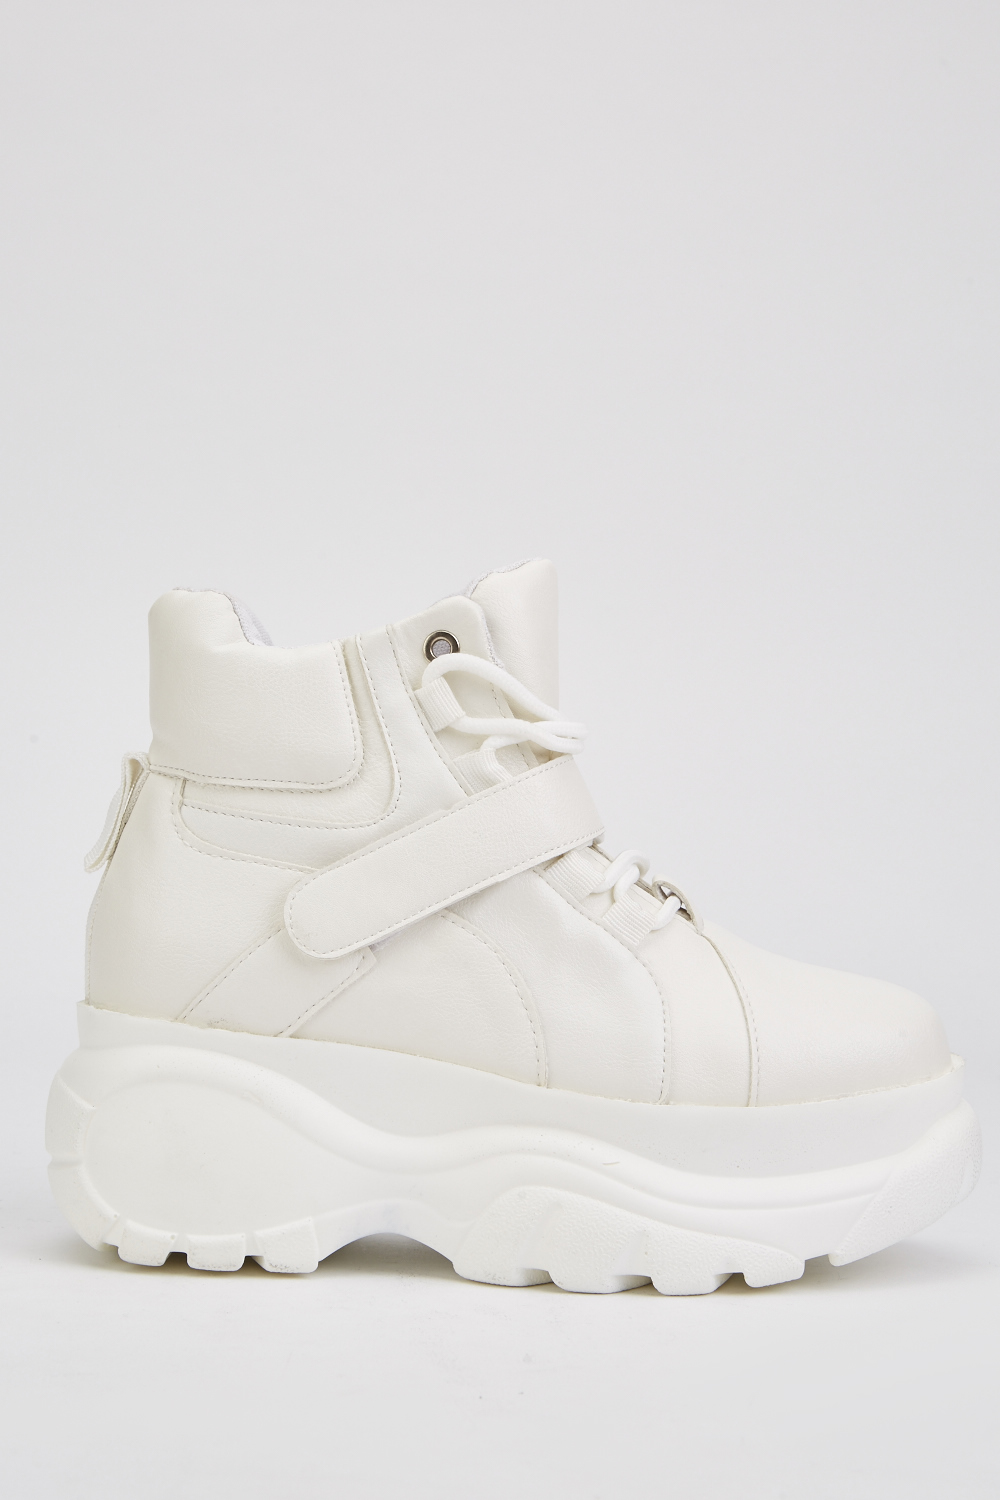 Chunky High Top Sneakers - Just $6